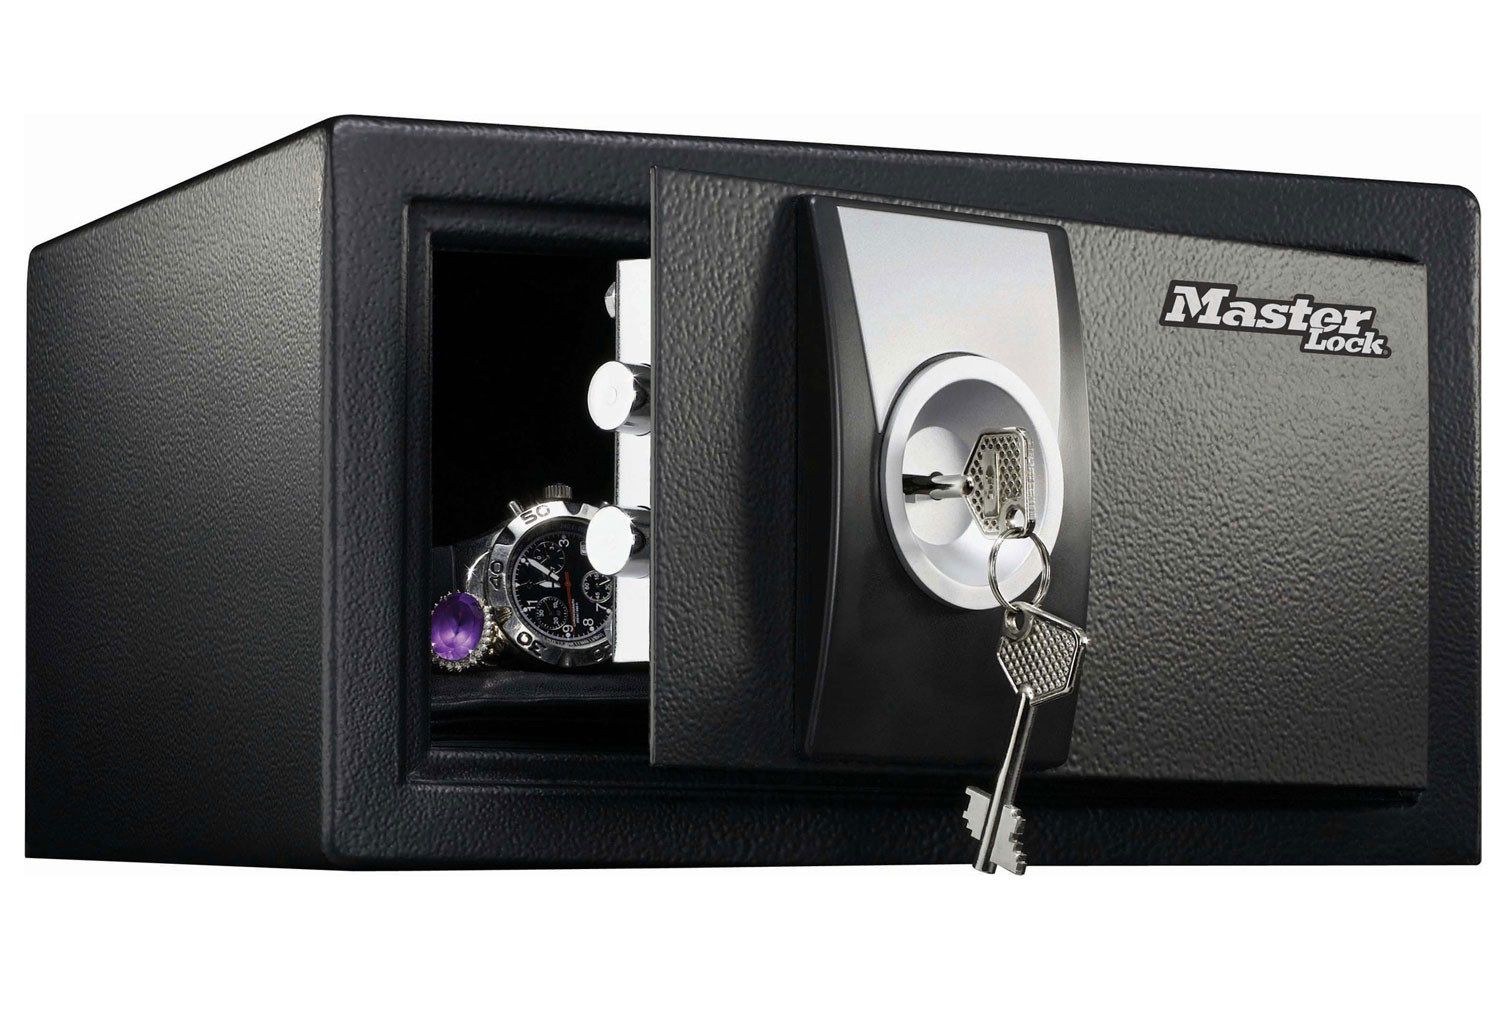 Master Lock X031ML Small Security Safe With Key Lock (10ltrs)